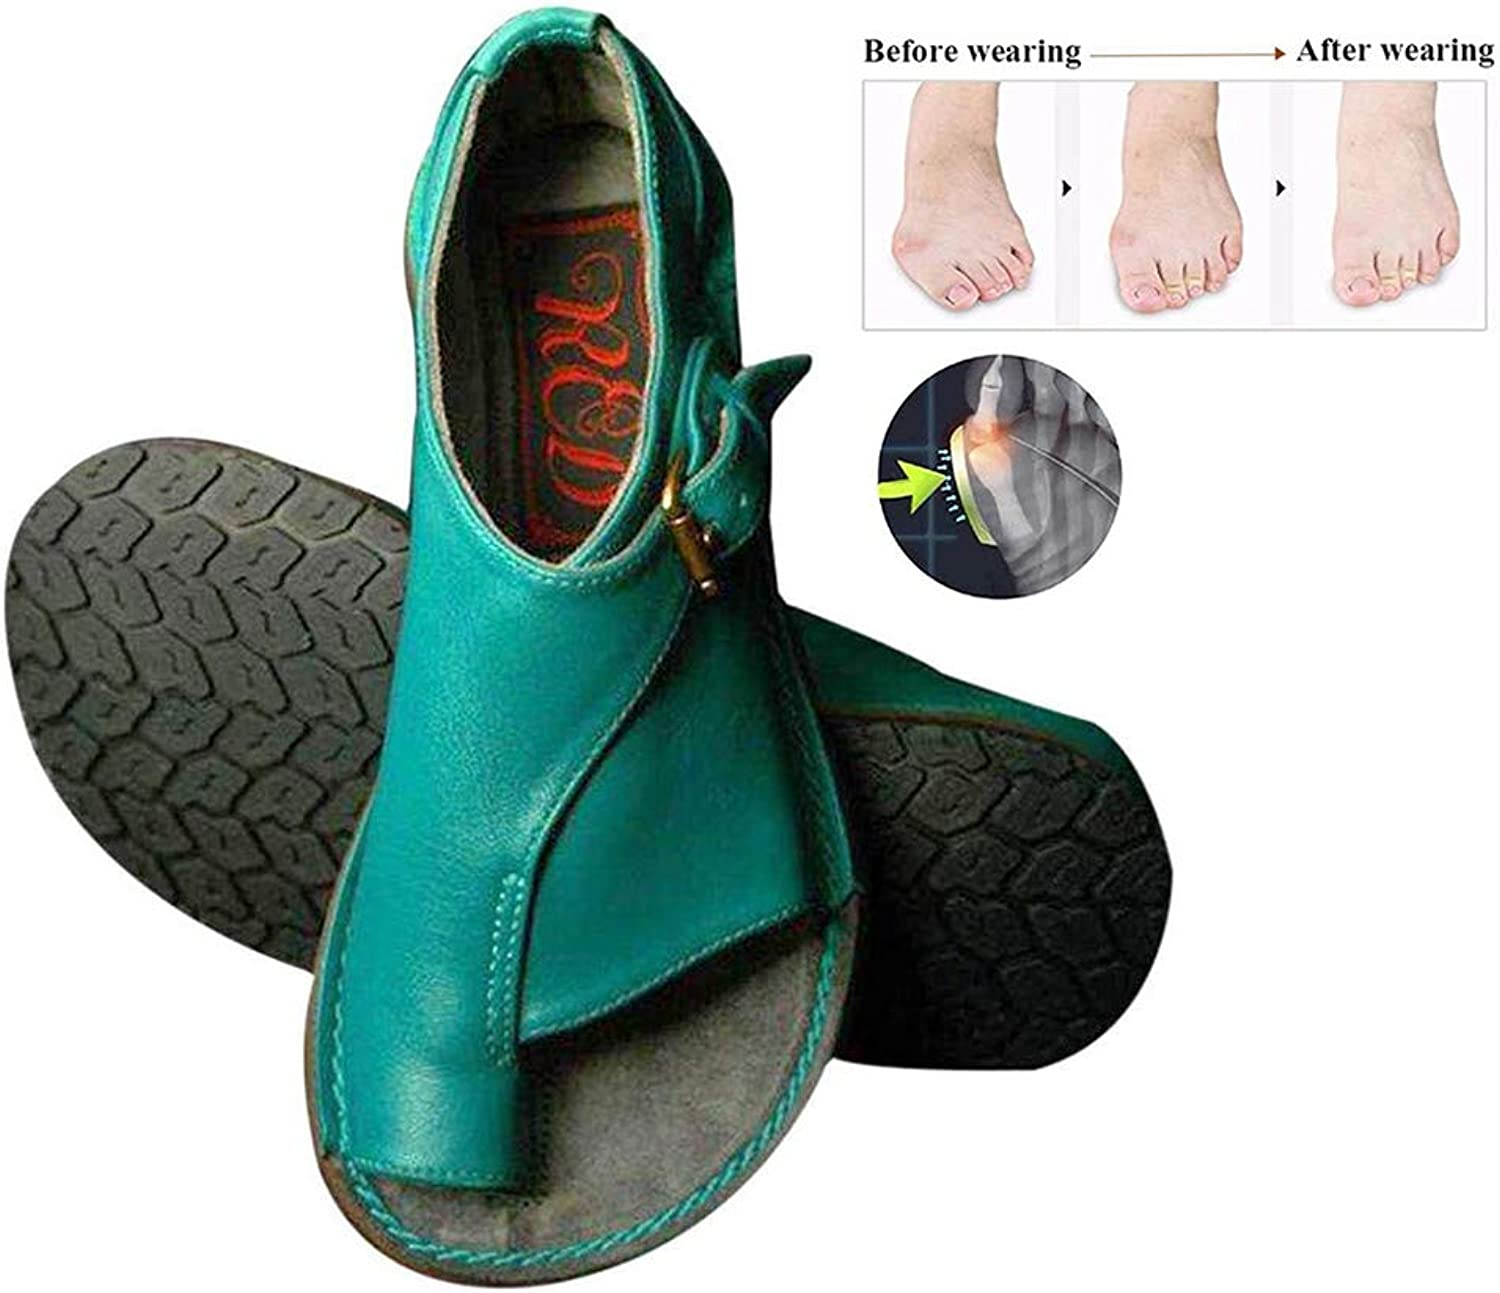 Foot Correction Summer Women Sandals shoes Flat Sole PU Leather Slippers Non Slip Wear Resistant Comfortable Slippers for Orthopedic Big Toe Bone Correction Beach Travel (bluee),bluee,37